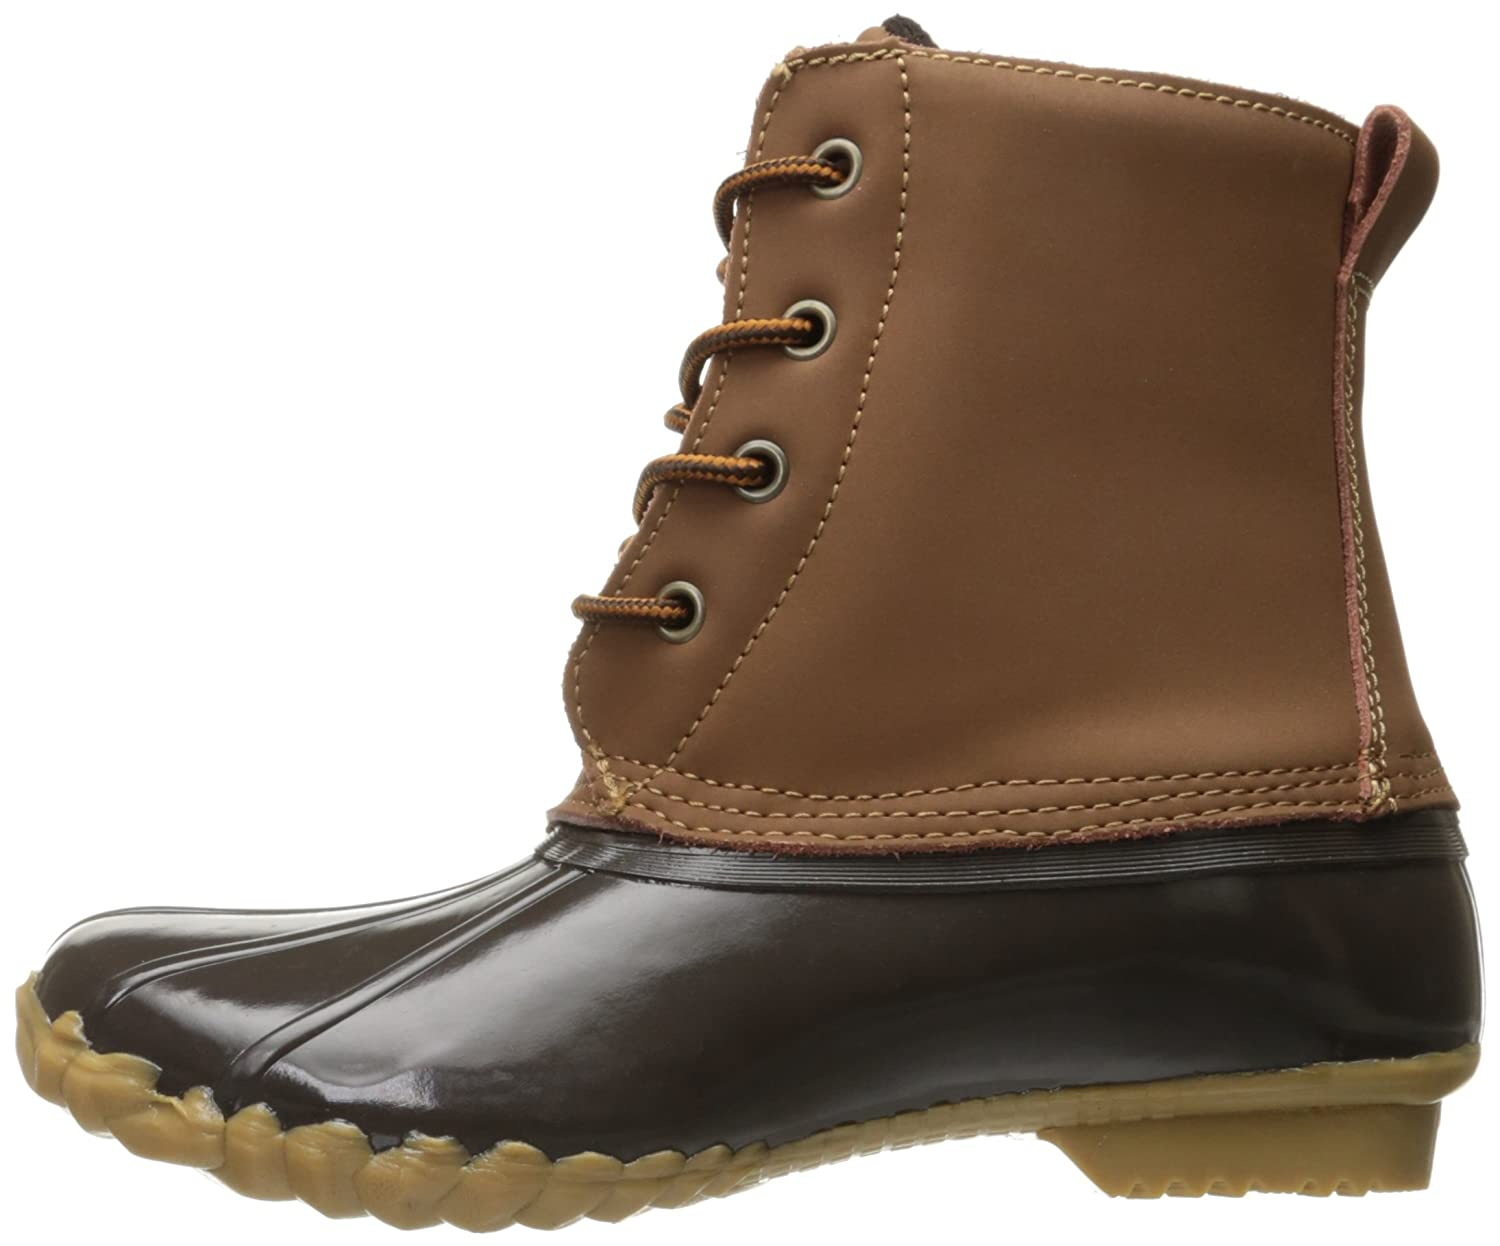 9c54622cee3 ... Western Chief Chief Chief Women Waterproof Four-Eye Lace-up Duck up  B01EUI2RT4 7